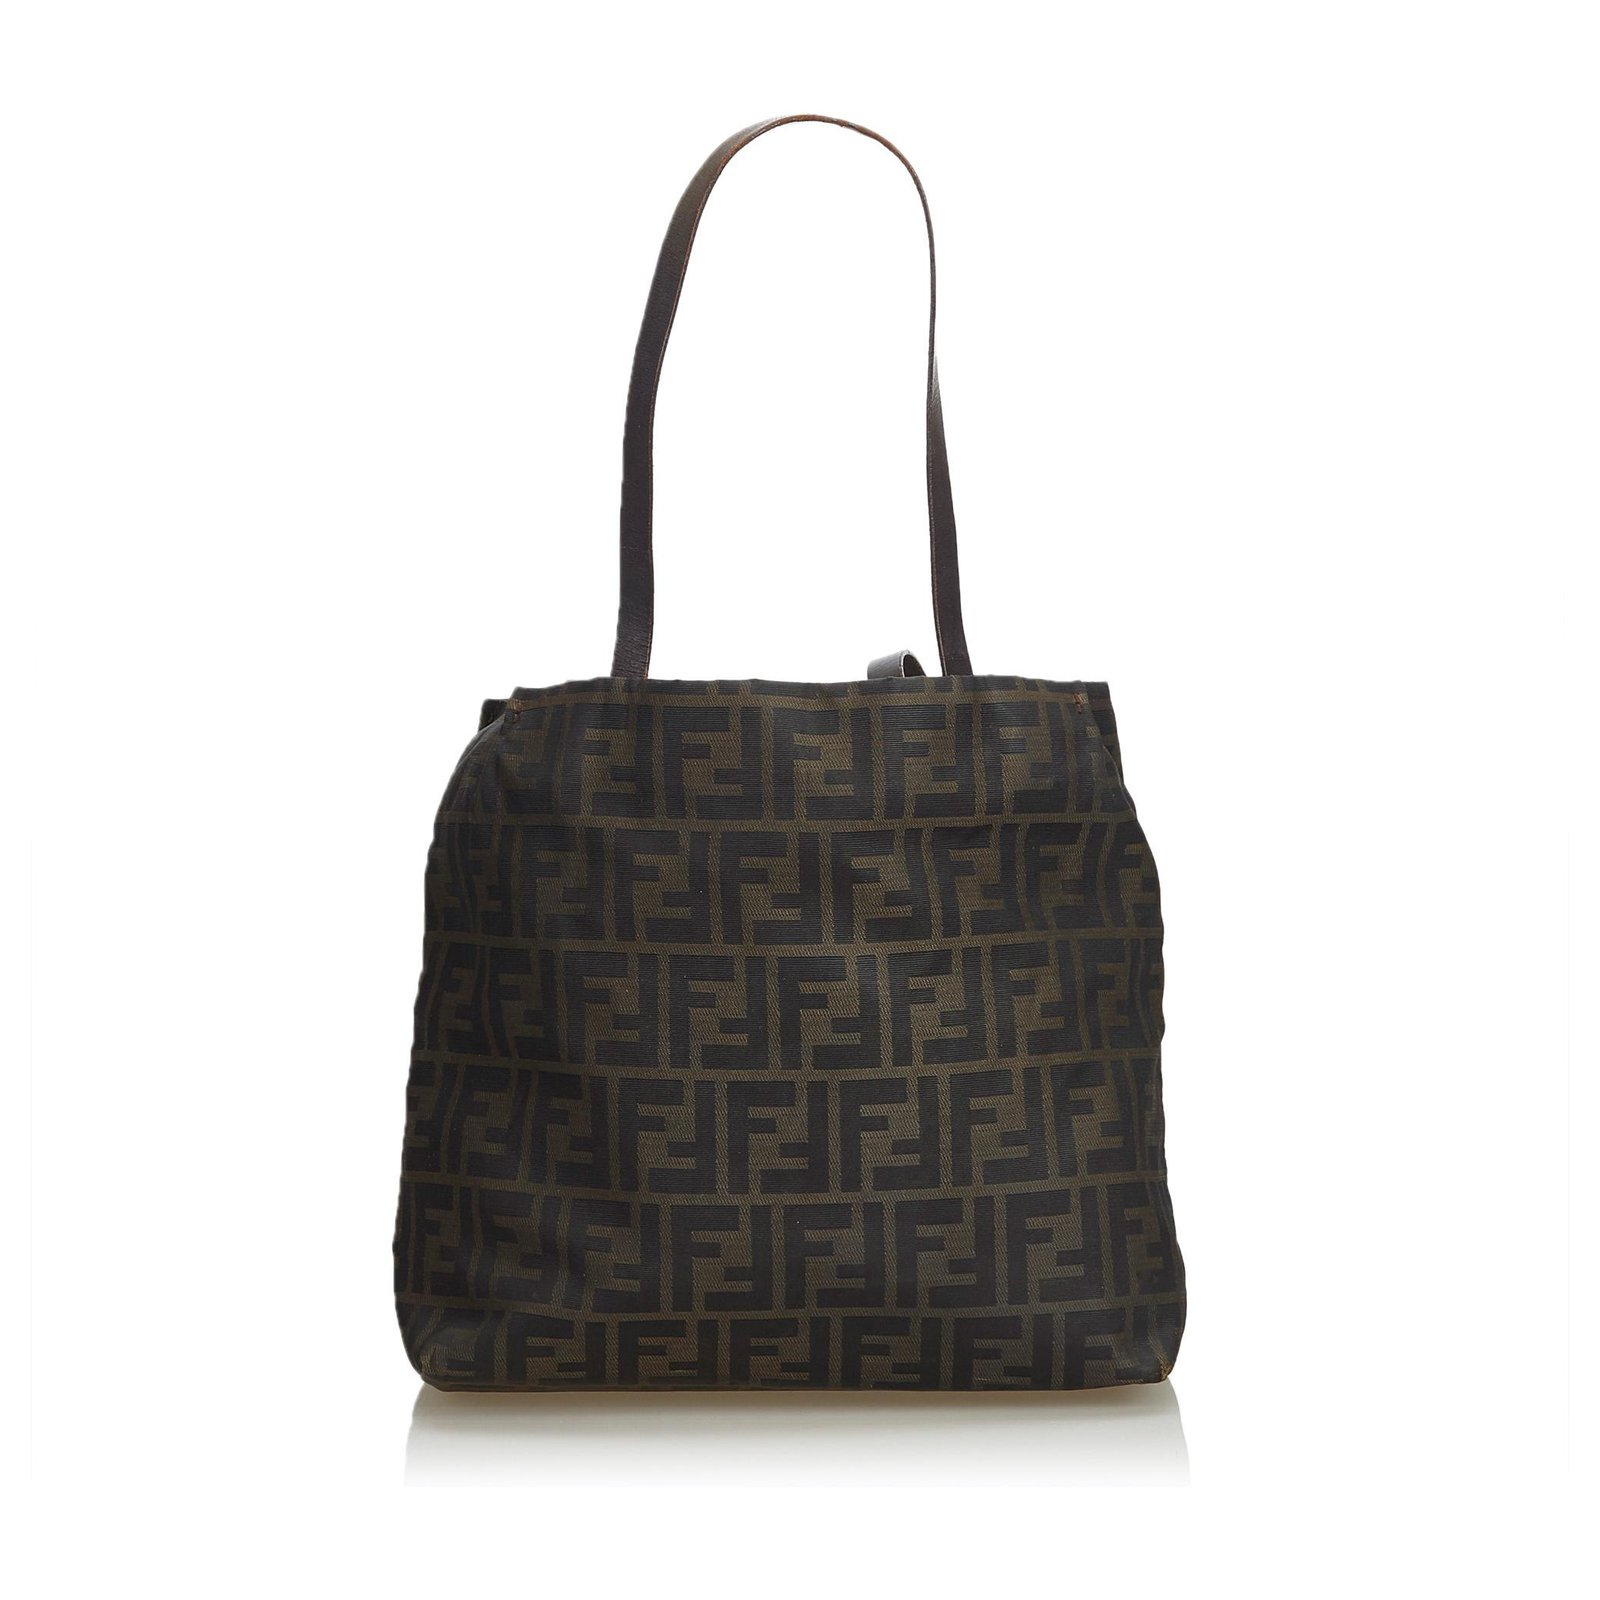 7a78235936d Fendi Fendi Brown Zucca Coated Canvas Tote Bag Totes Leather